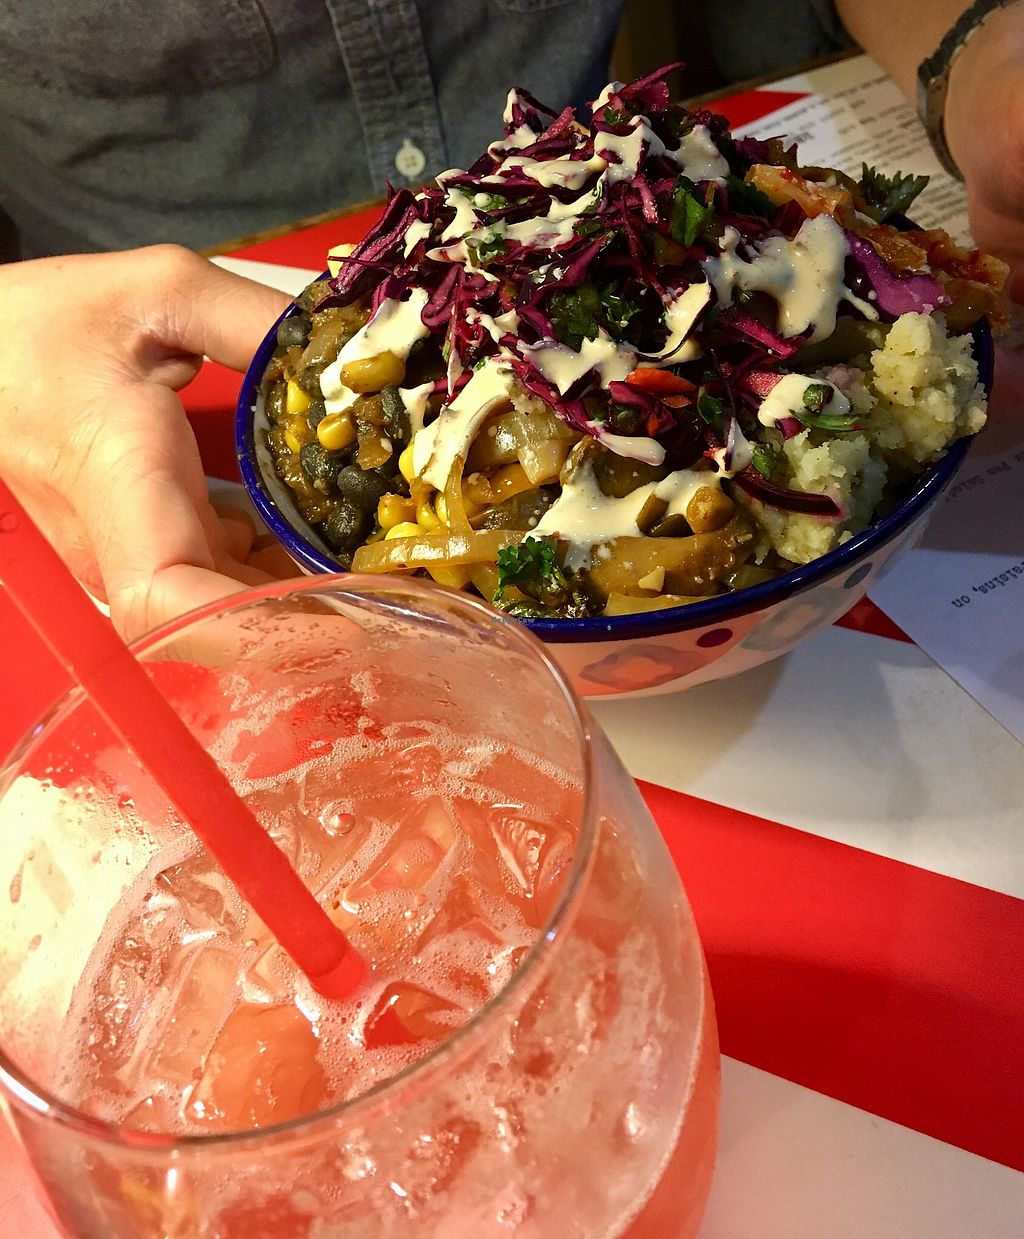 """Photo of The Vegetable Hunter Cafe and Boutique Brewery  by <a href=""""/members/profile/Thepennsyltuckyvegan"""">Thepennsyltuckyvegan</a> <br/>Taco Bowl <br/> February 25, 2018  - <a href='/contact/abuse/image/48560/363485'>Report</a>"""